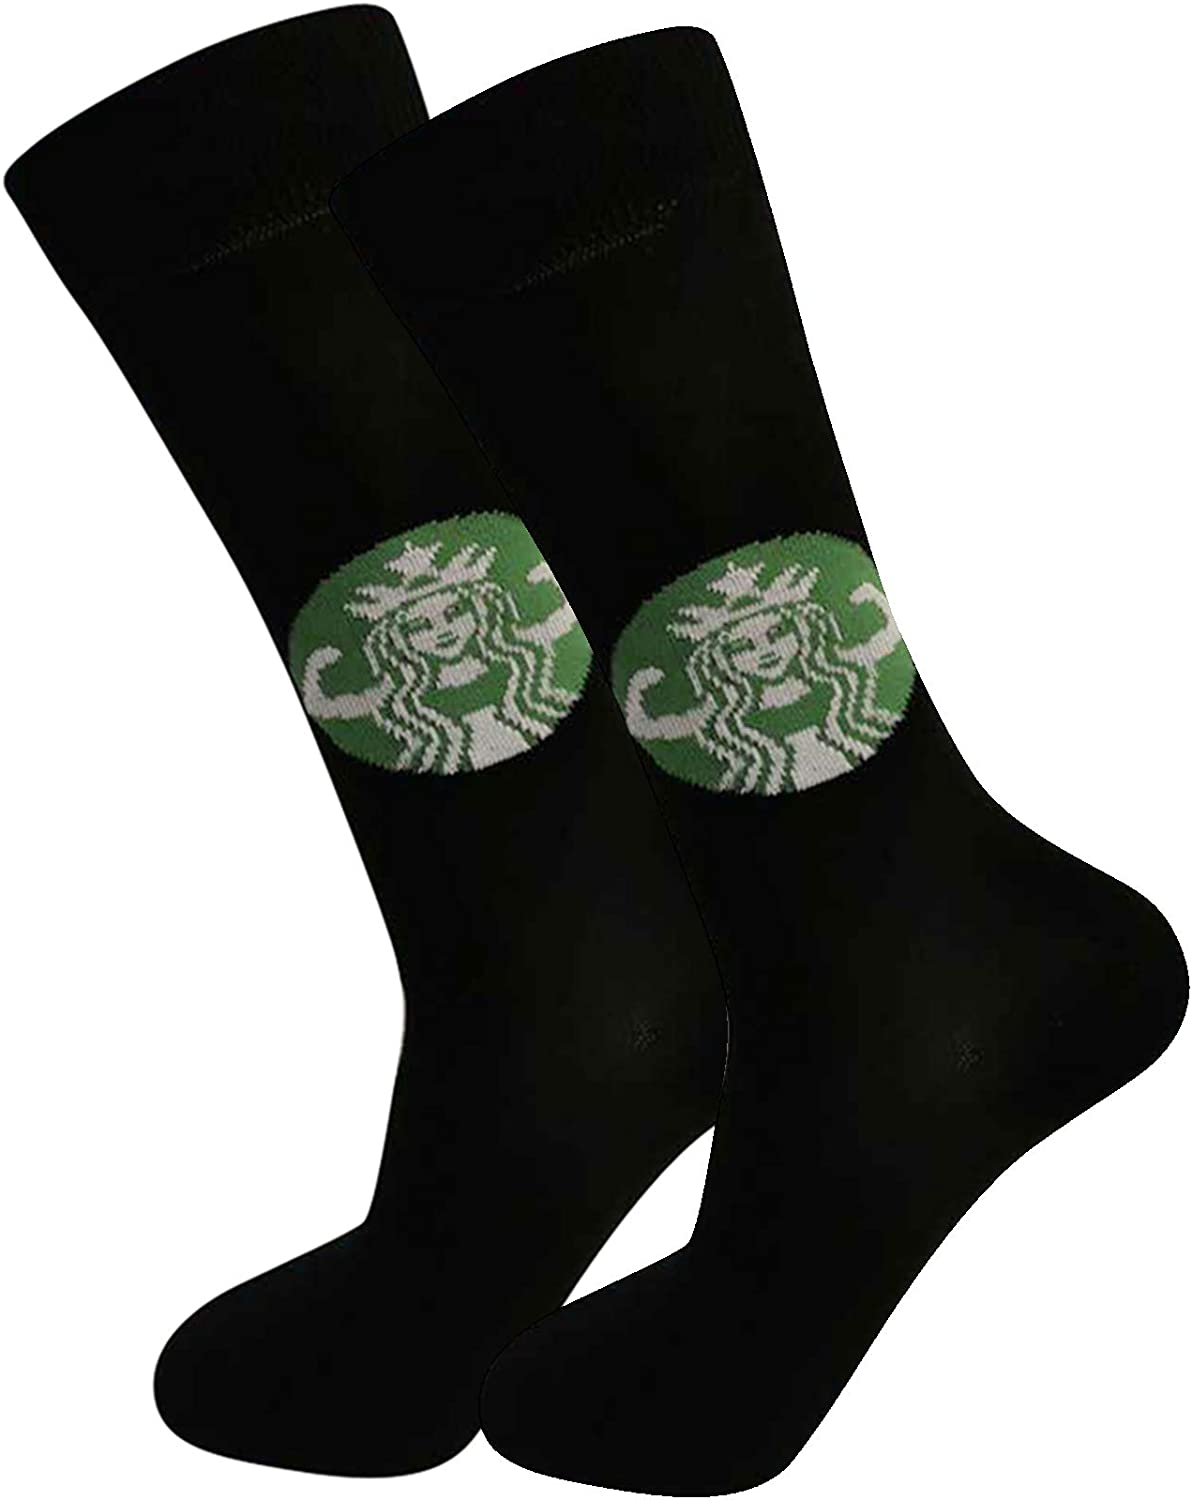 Prime Creations STARBUFF Meme Funny Socks | Cute Socks for Women or Men - Coffee Lovers | Stretchy, Breathable Cotton